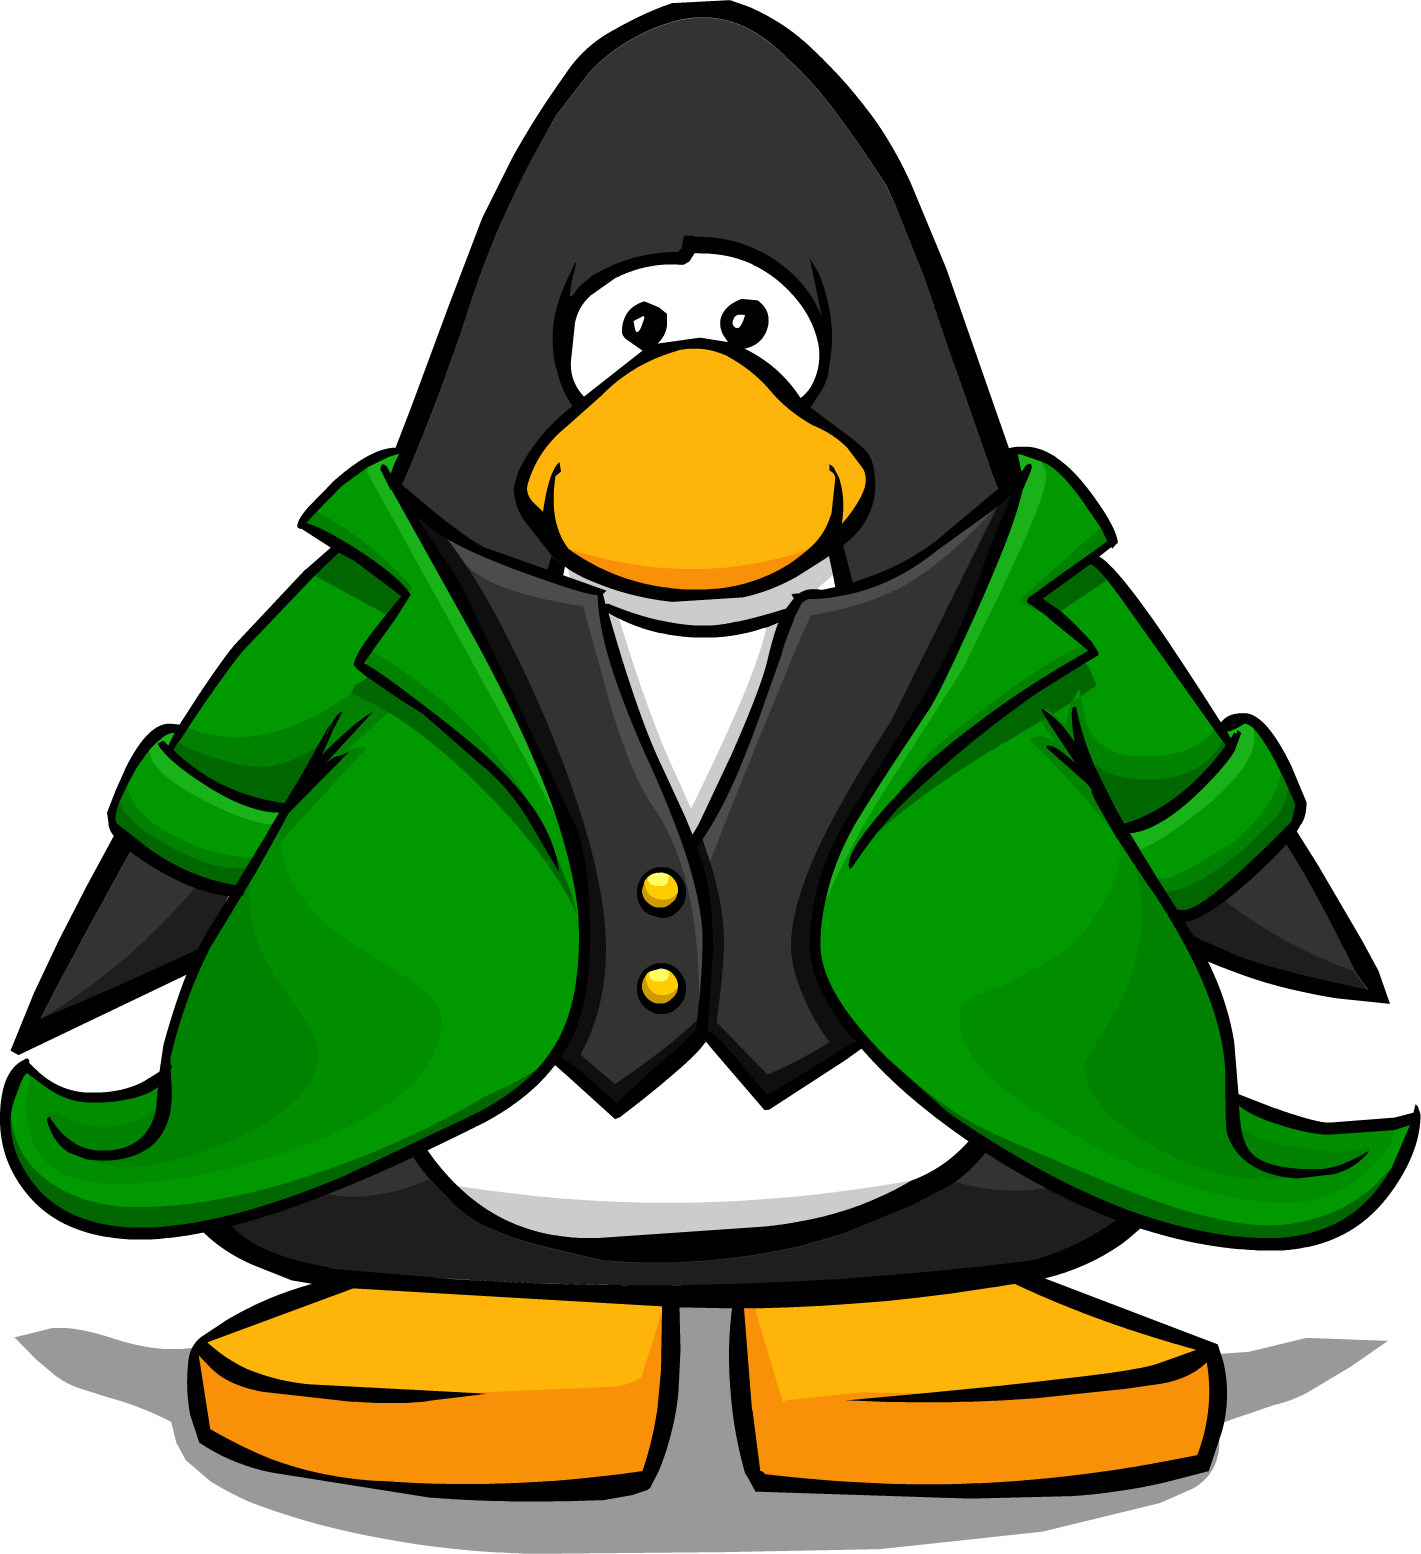 image leprechaun tuxedo from a player card png club penguin